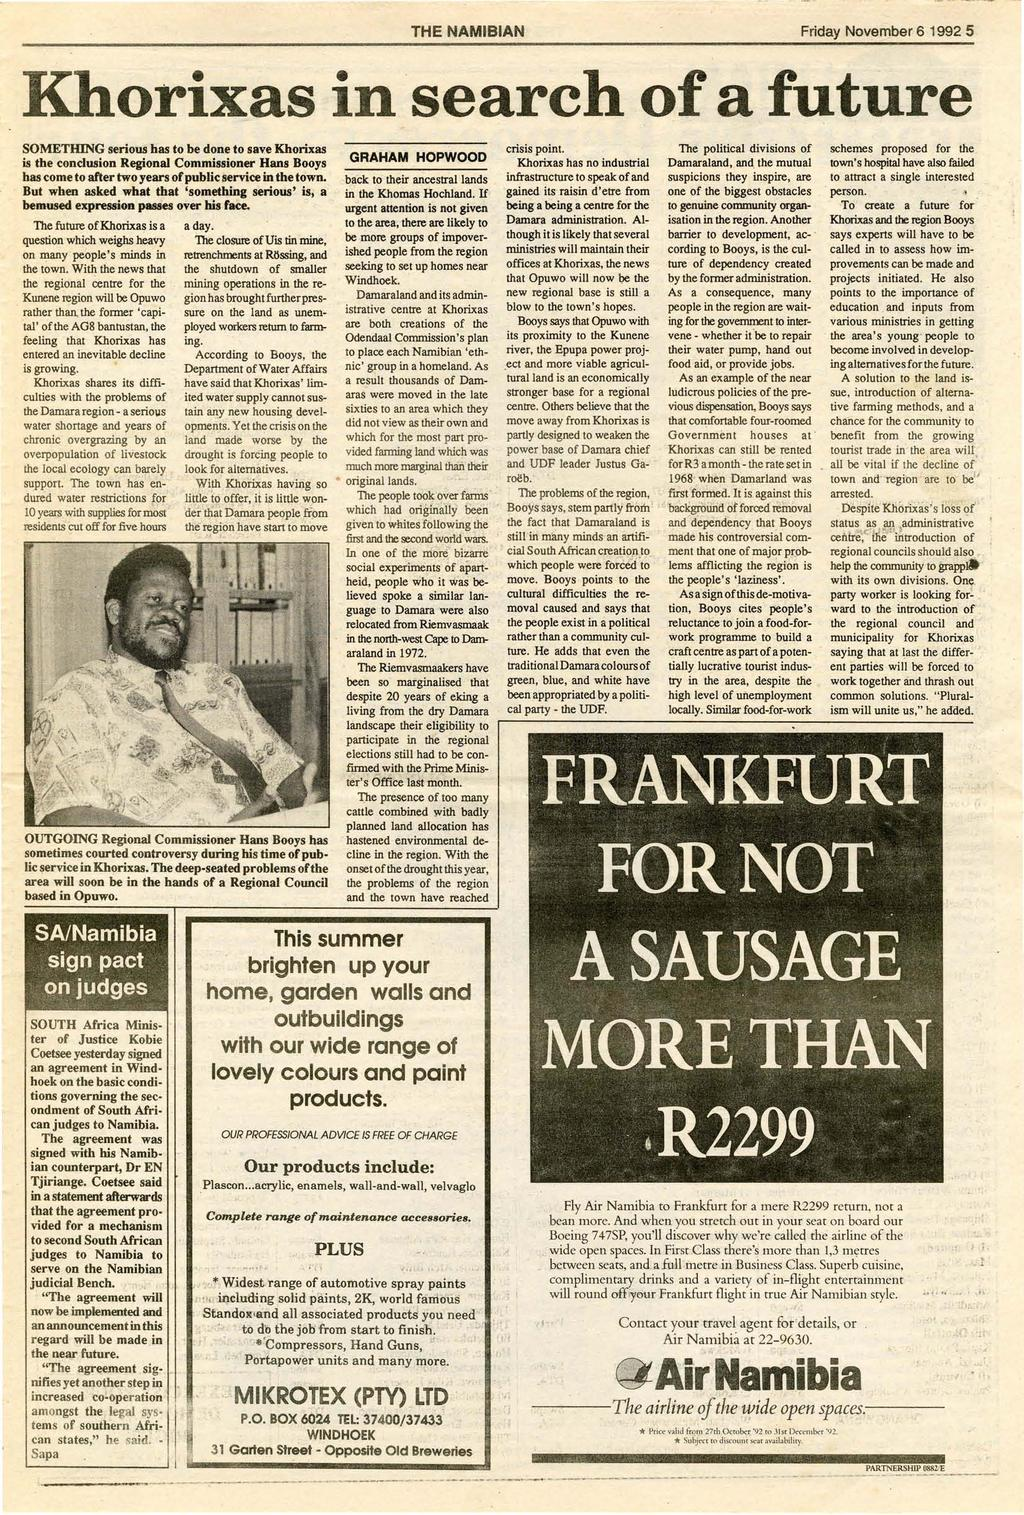 THE NAMIBIAN Friday November 6 1992 5 Khorixas in search of a future SOMETHING serious has to be done to save Khorixas is.